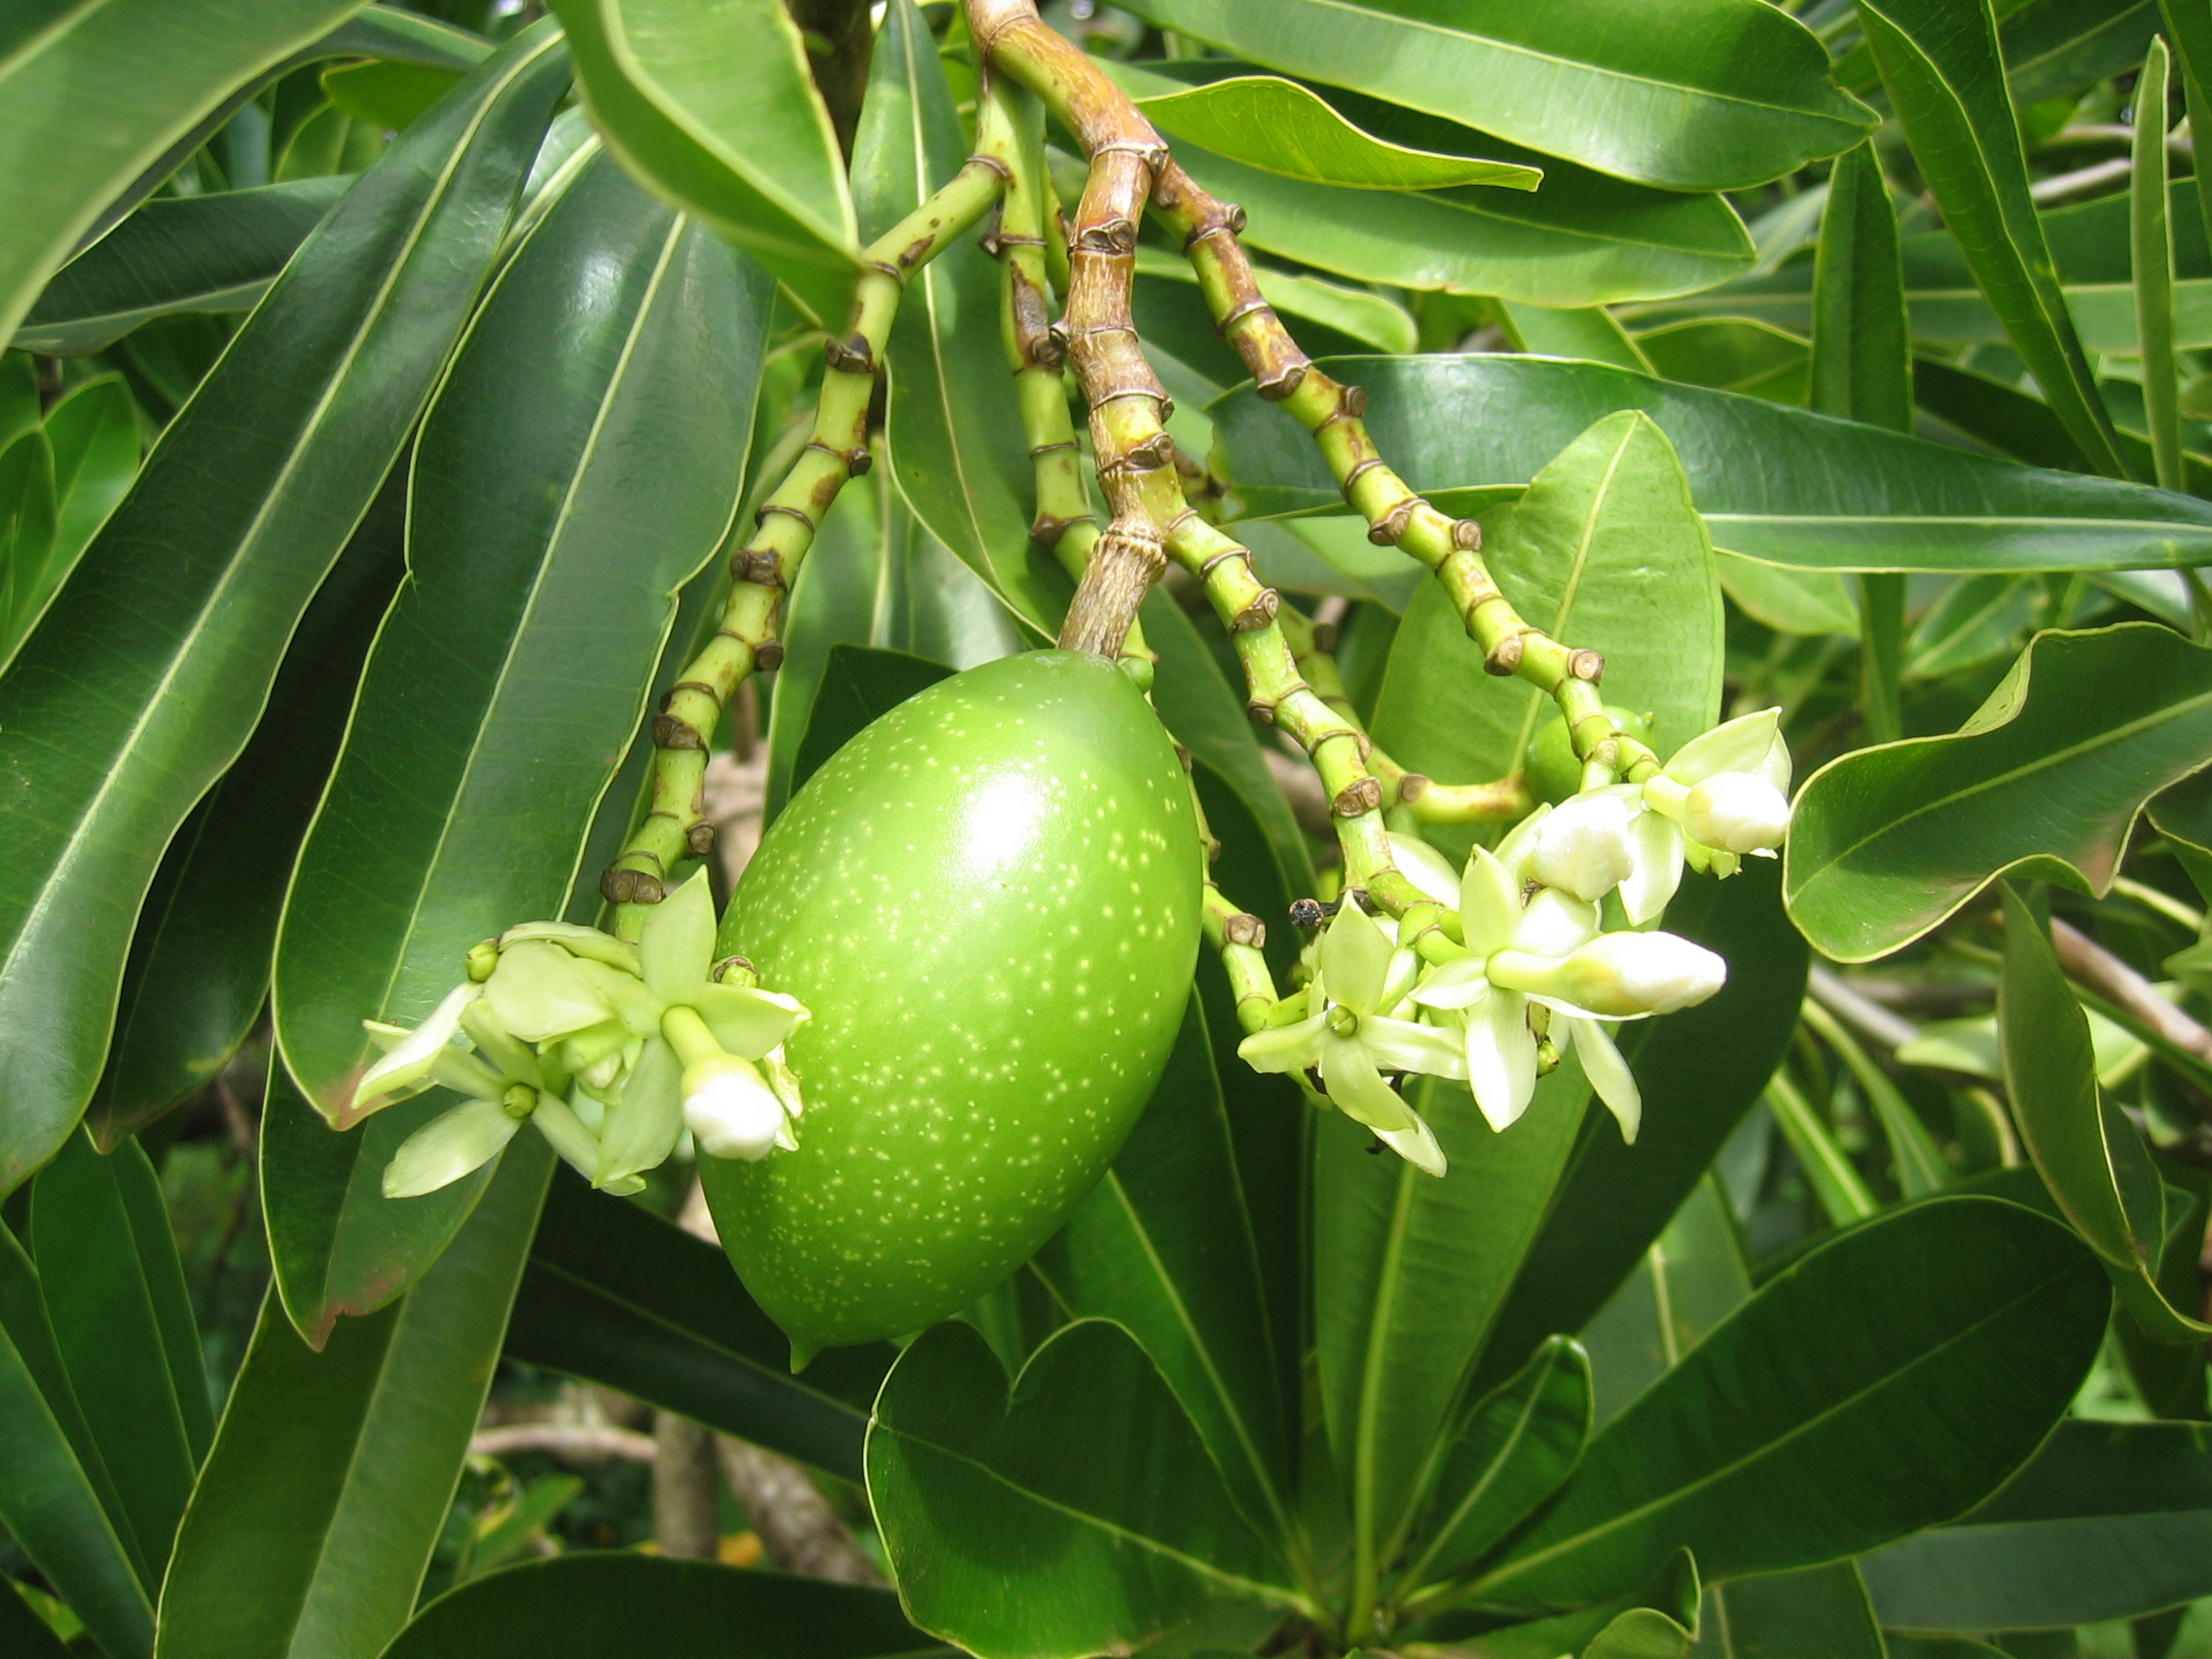 Cerbera manghas   - Flower buds and developing fruit